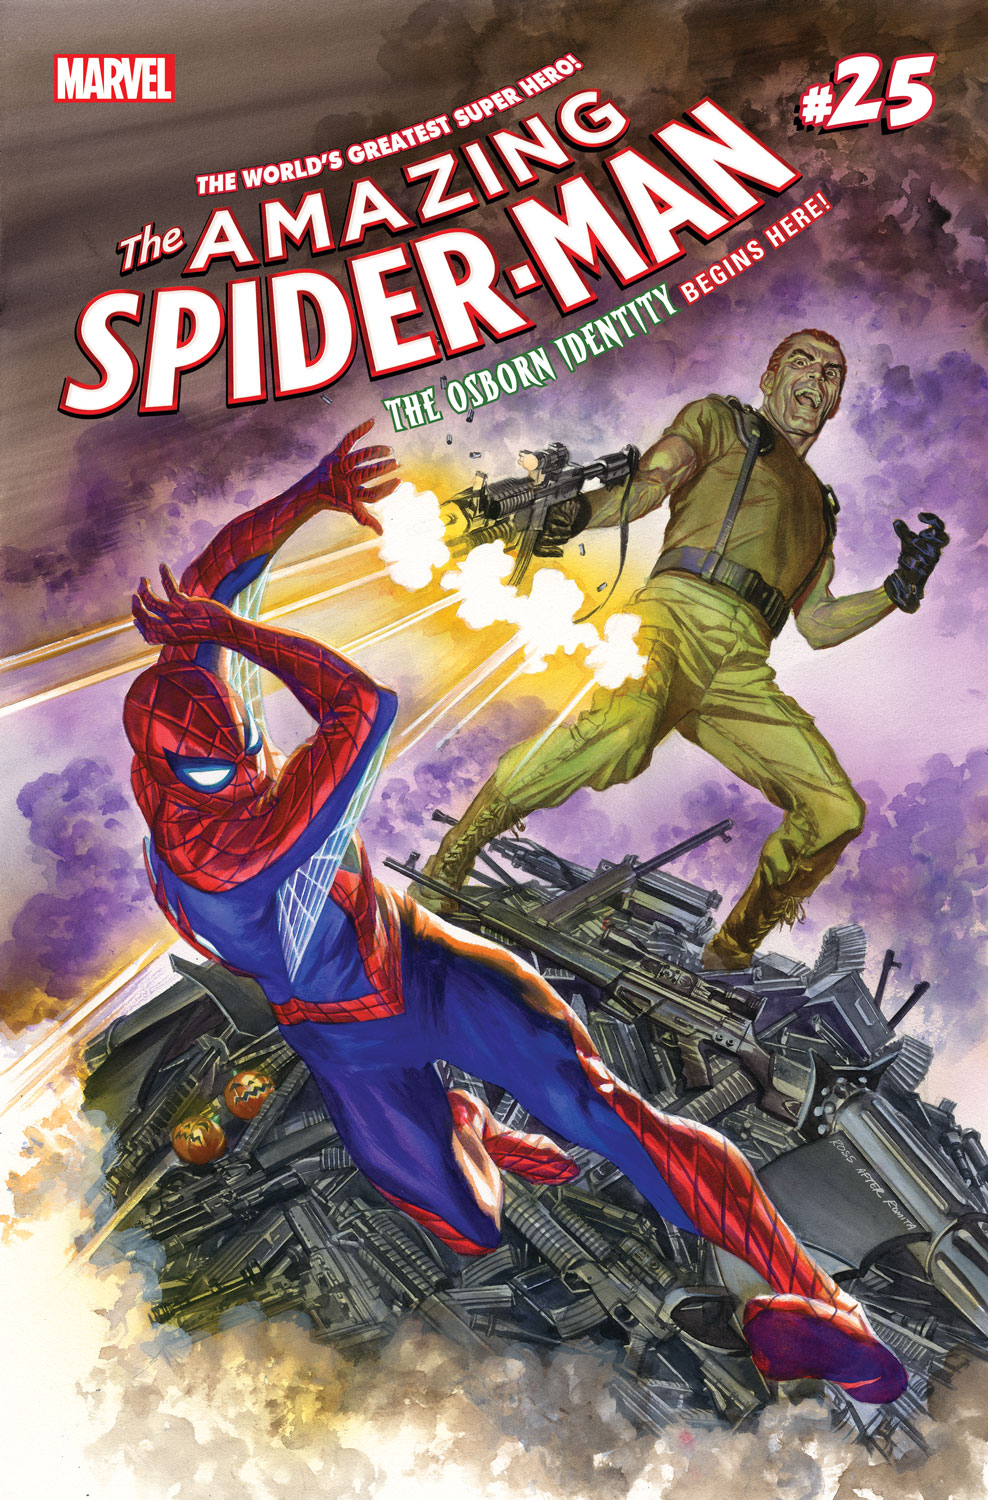 THE AMAZING SPIDER-MAN # 001 SPECIAL EDITION VARIANT 2015 ...